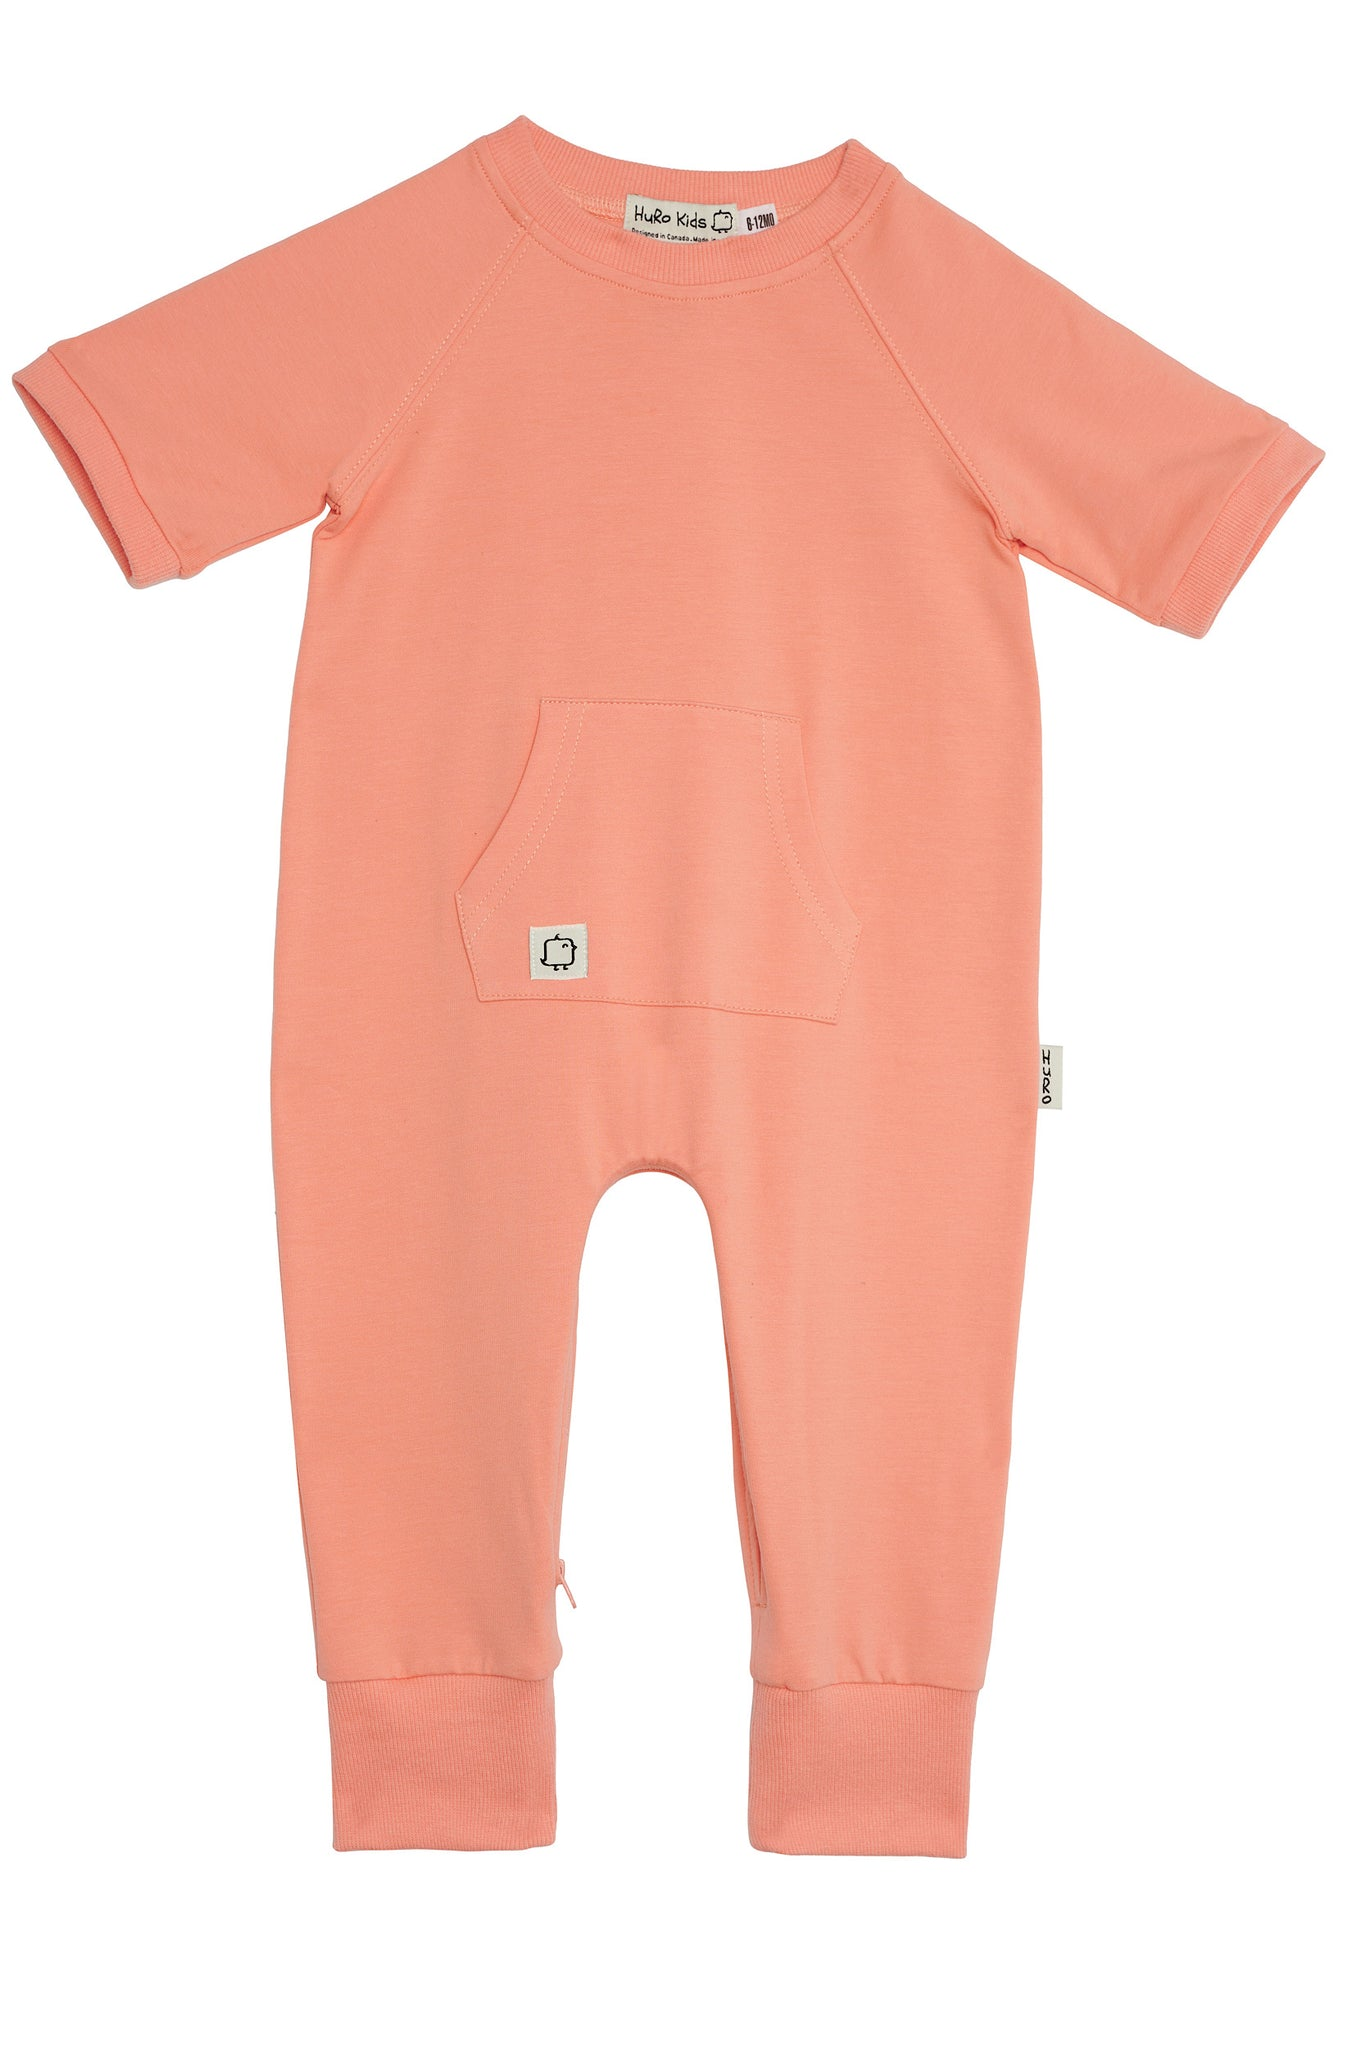 Short Sleeve Romper - Coral (PreOrder/ Ships after April 5th) - HuRo Kids Clothing